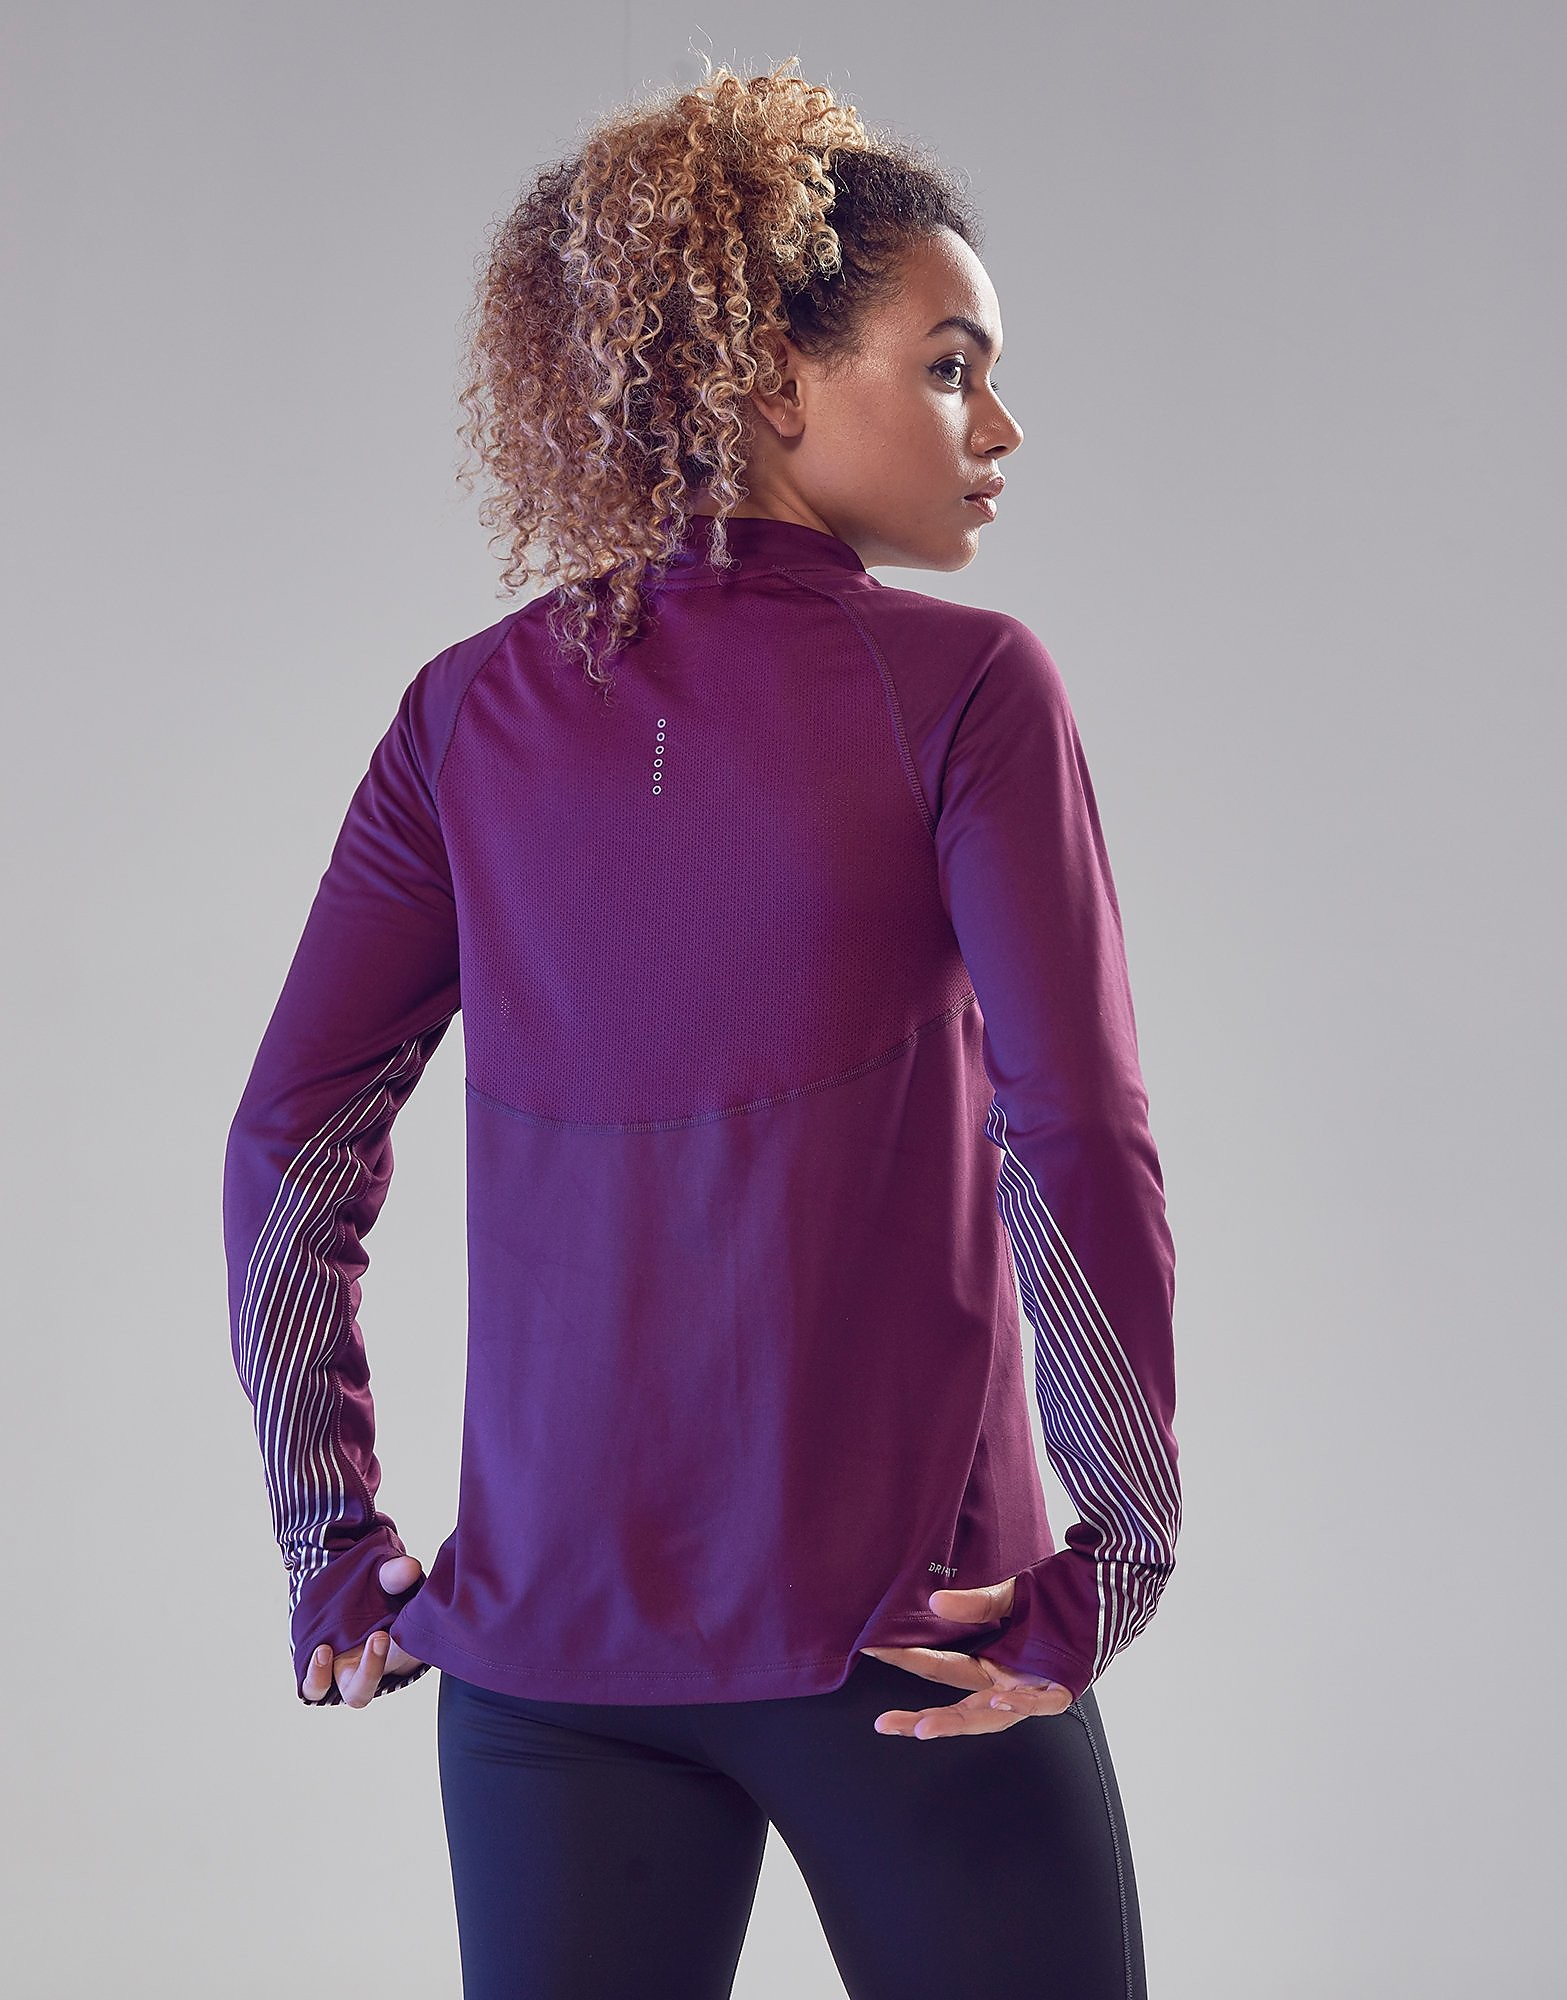 Nike Flash 1/2 Zip Running Top